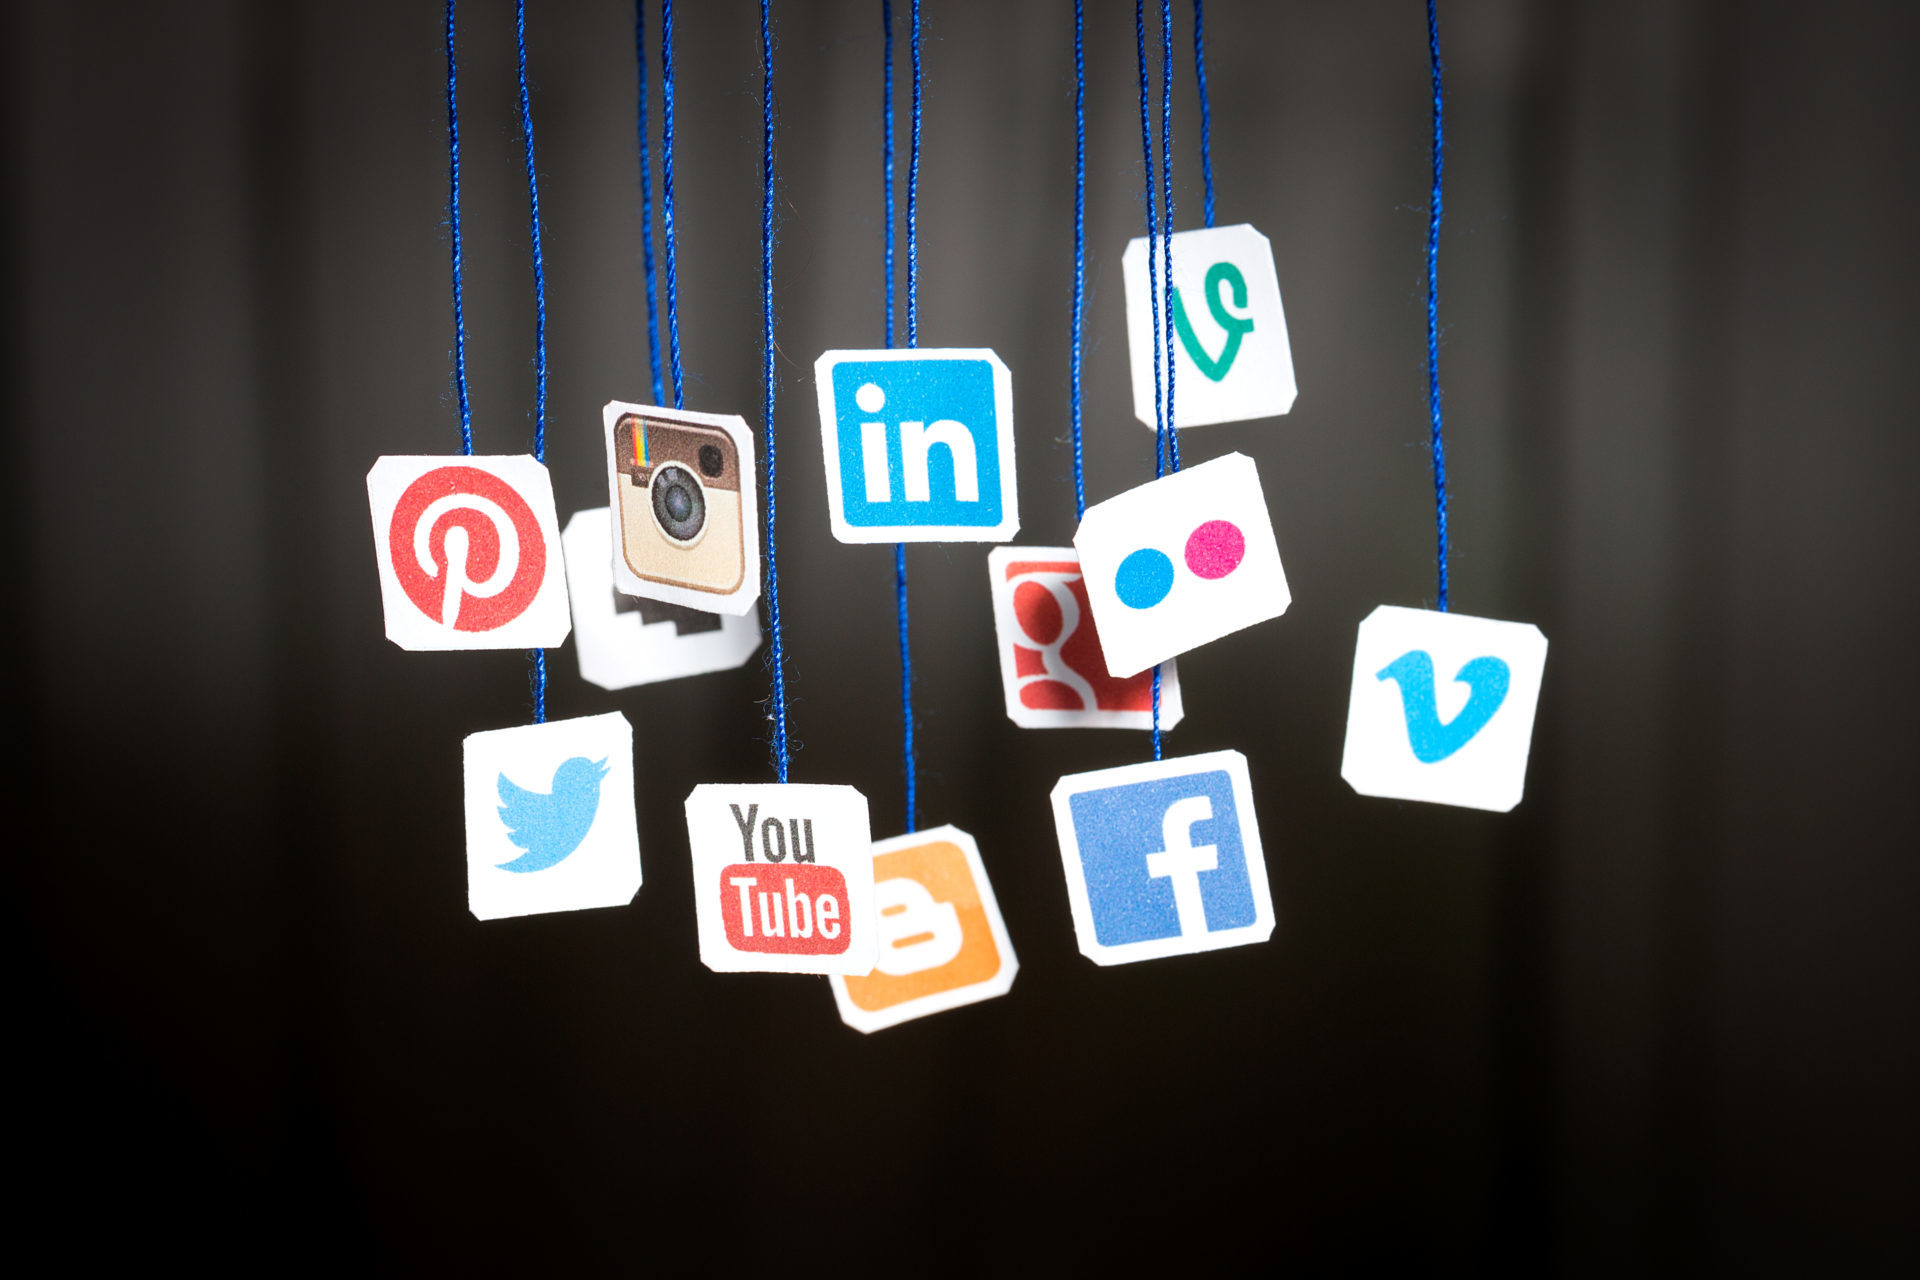 Blocked, fined, personally liable: UK clamps down on social media firms for harmful content